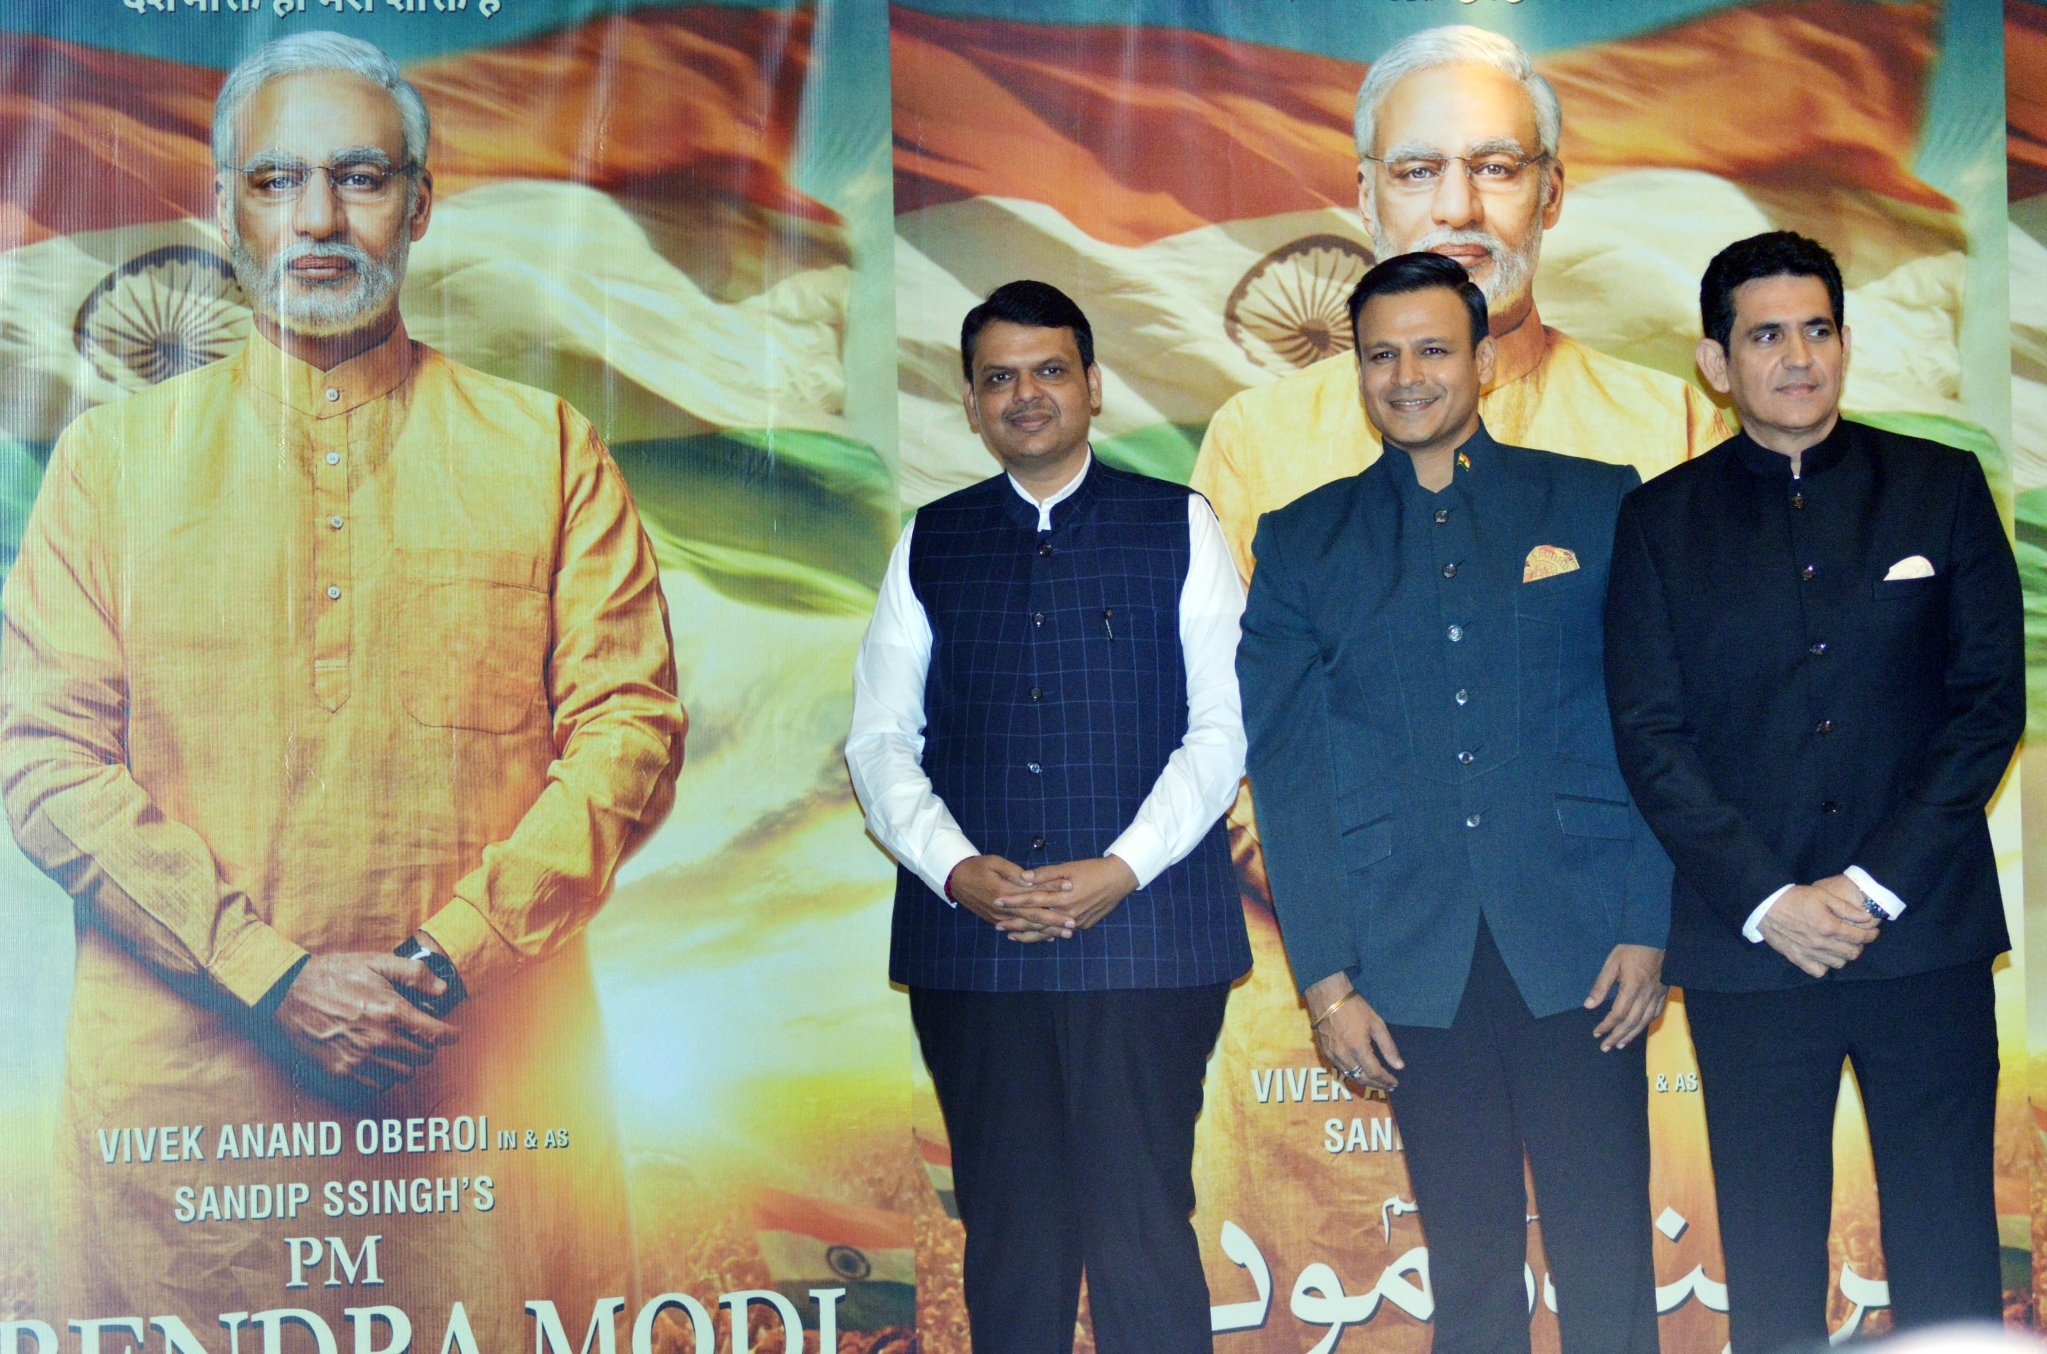 PM Narendra Modi first look out, Vivek Oberoi plays the lead role